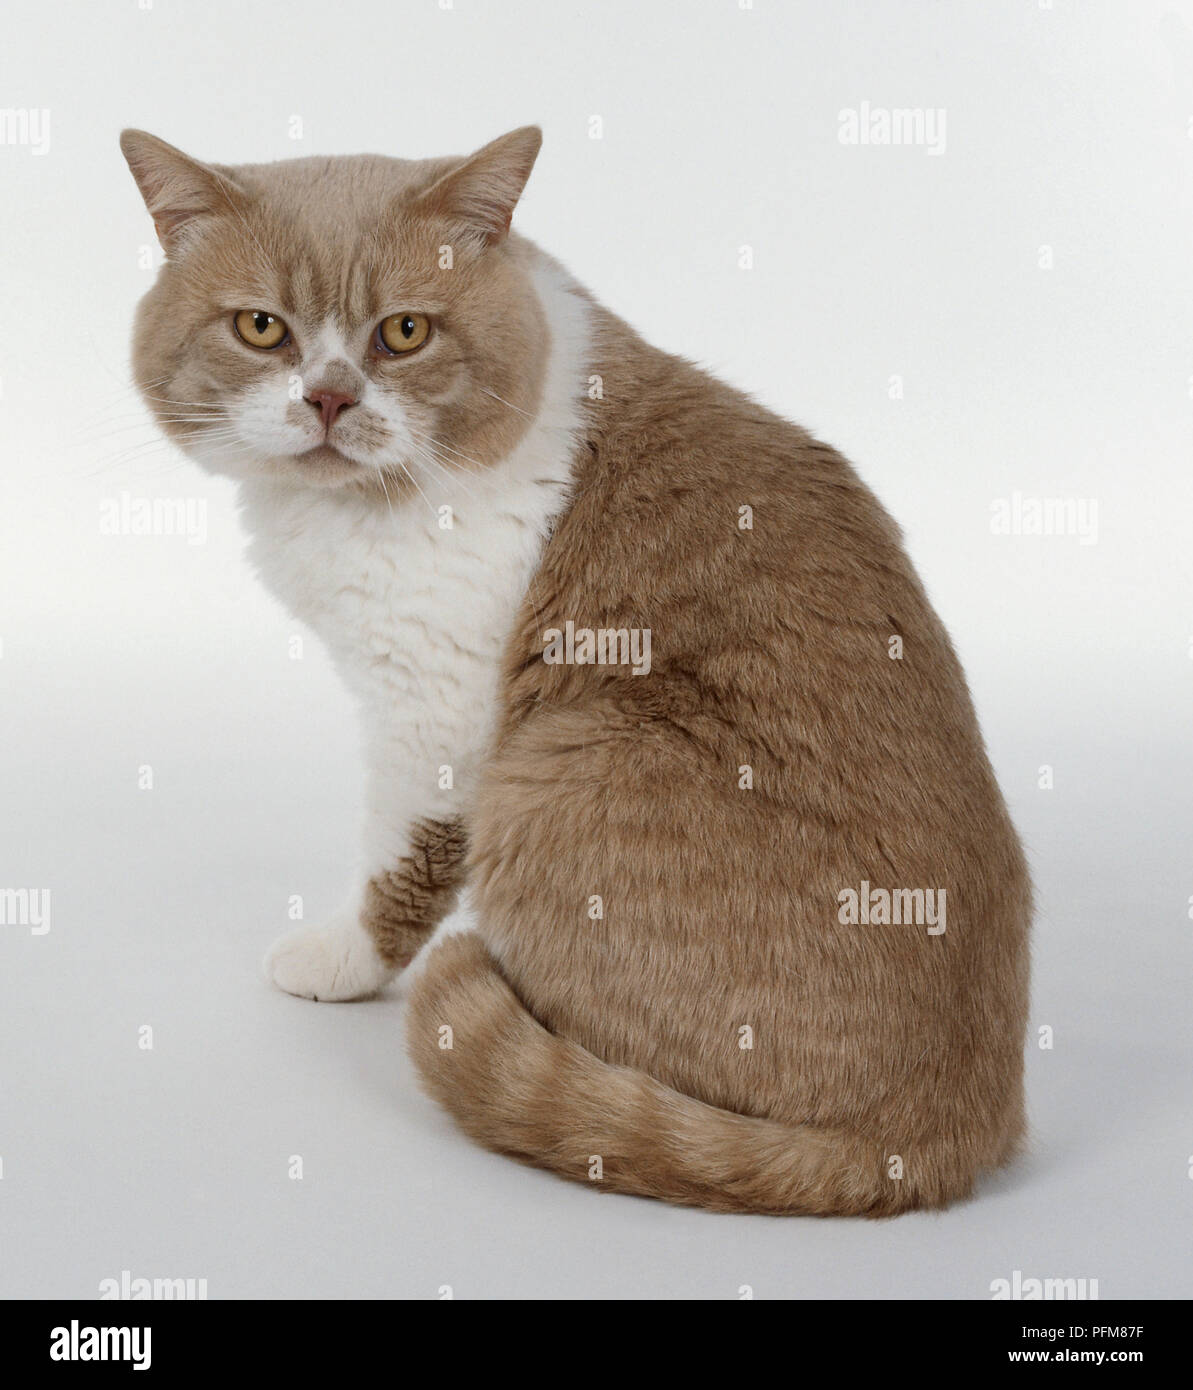 Cream and White British shorthaired cat with white blaze on face and cobby body shape, sitting. - Stock Image